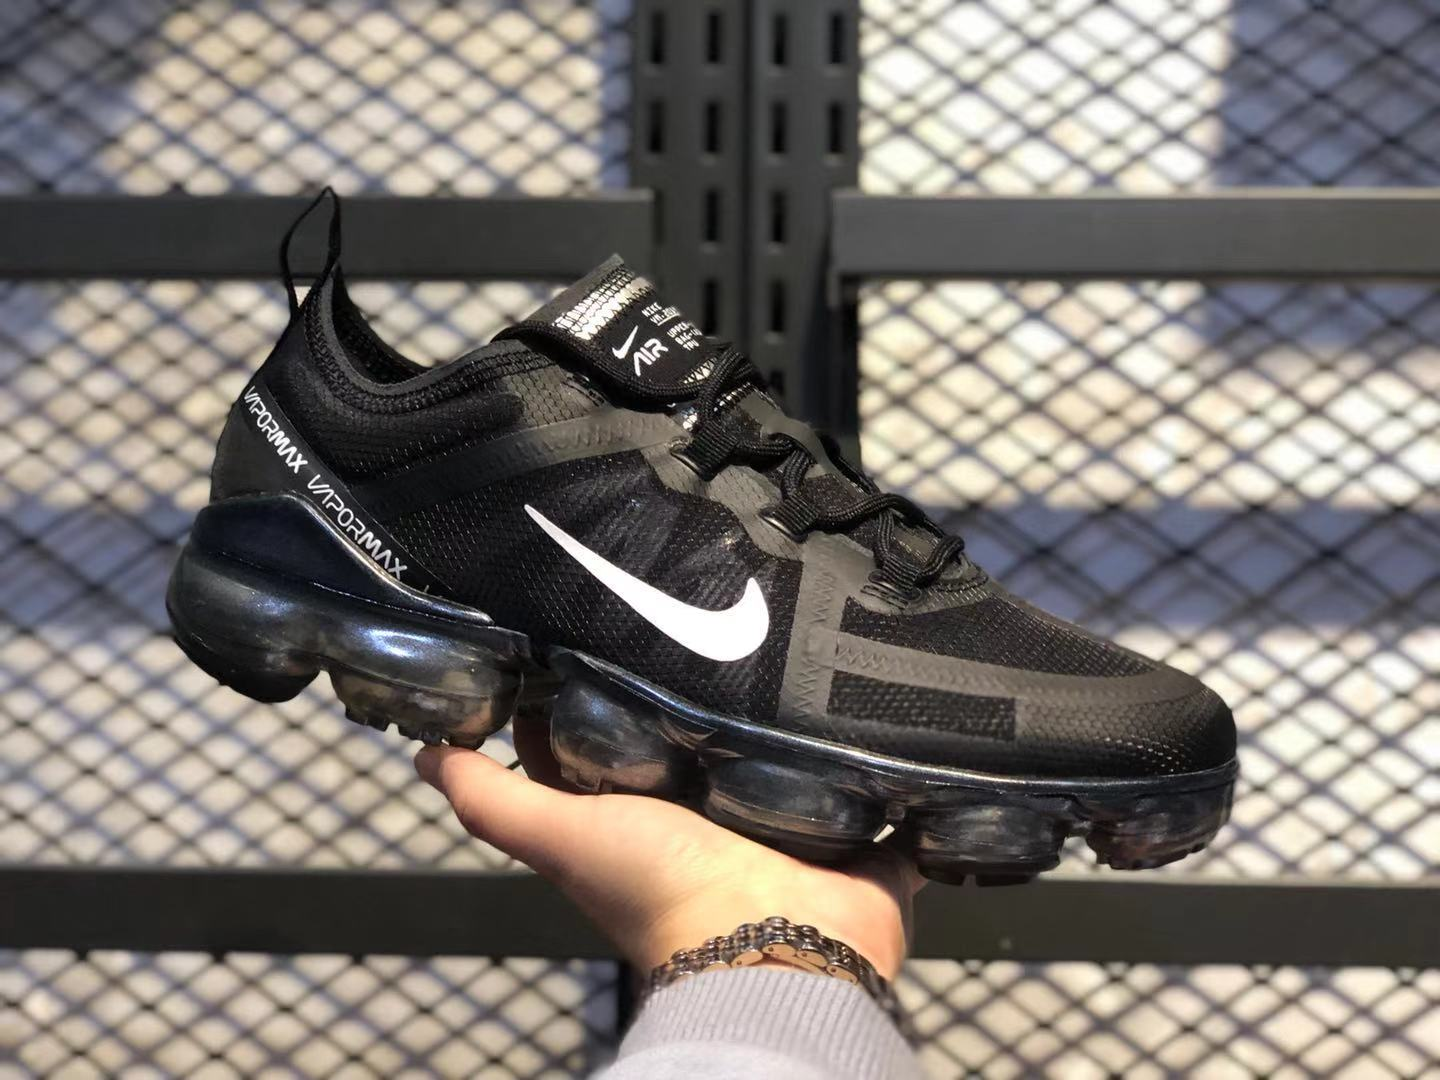 Nike Air Vapormax Black/Anthracite 2019 Newest Sneakers Free Shipping AR6631-003